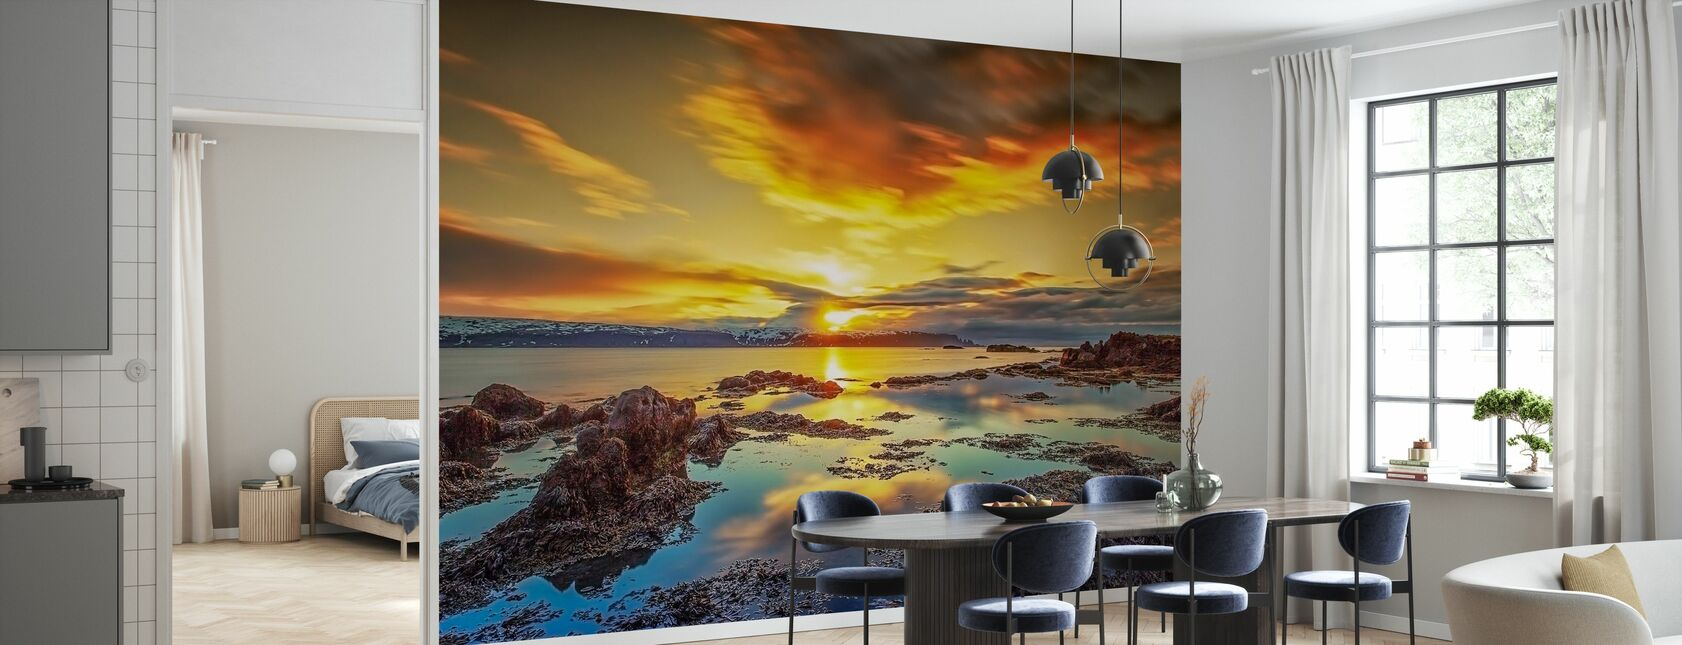 Scenery of West Iceland - Wallpaper - Kitchen